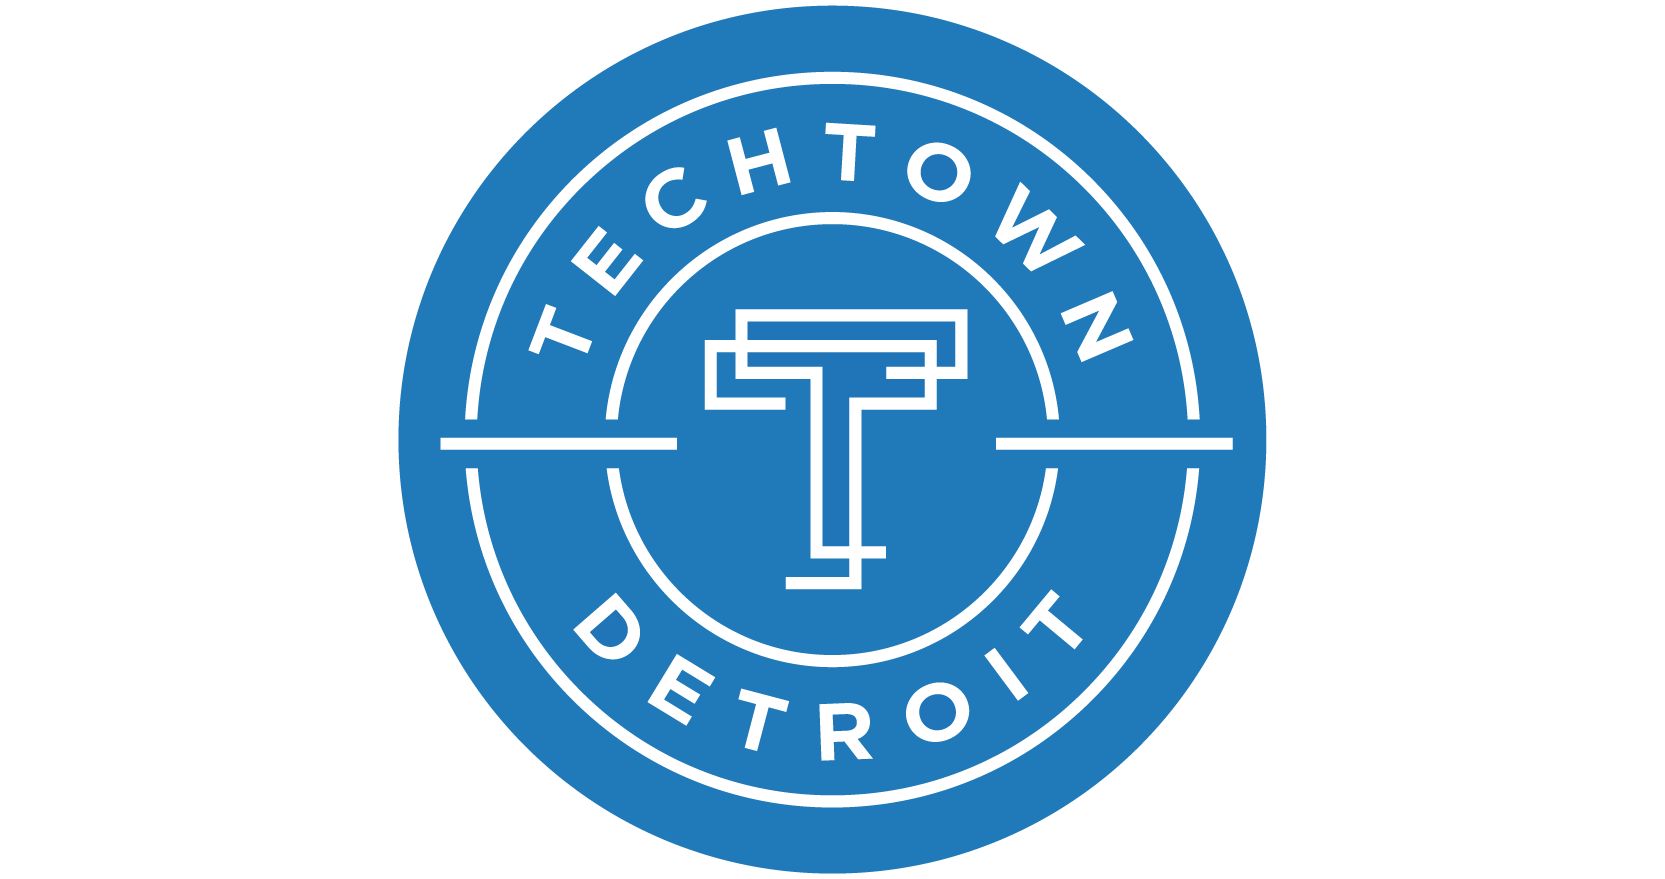 TechTown Detroit